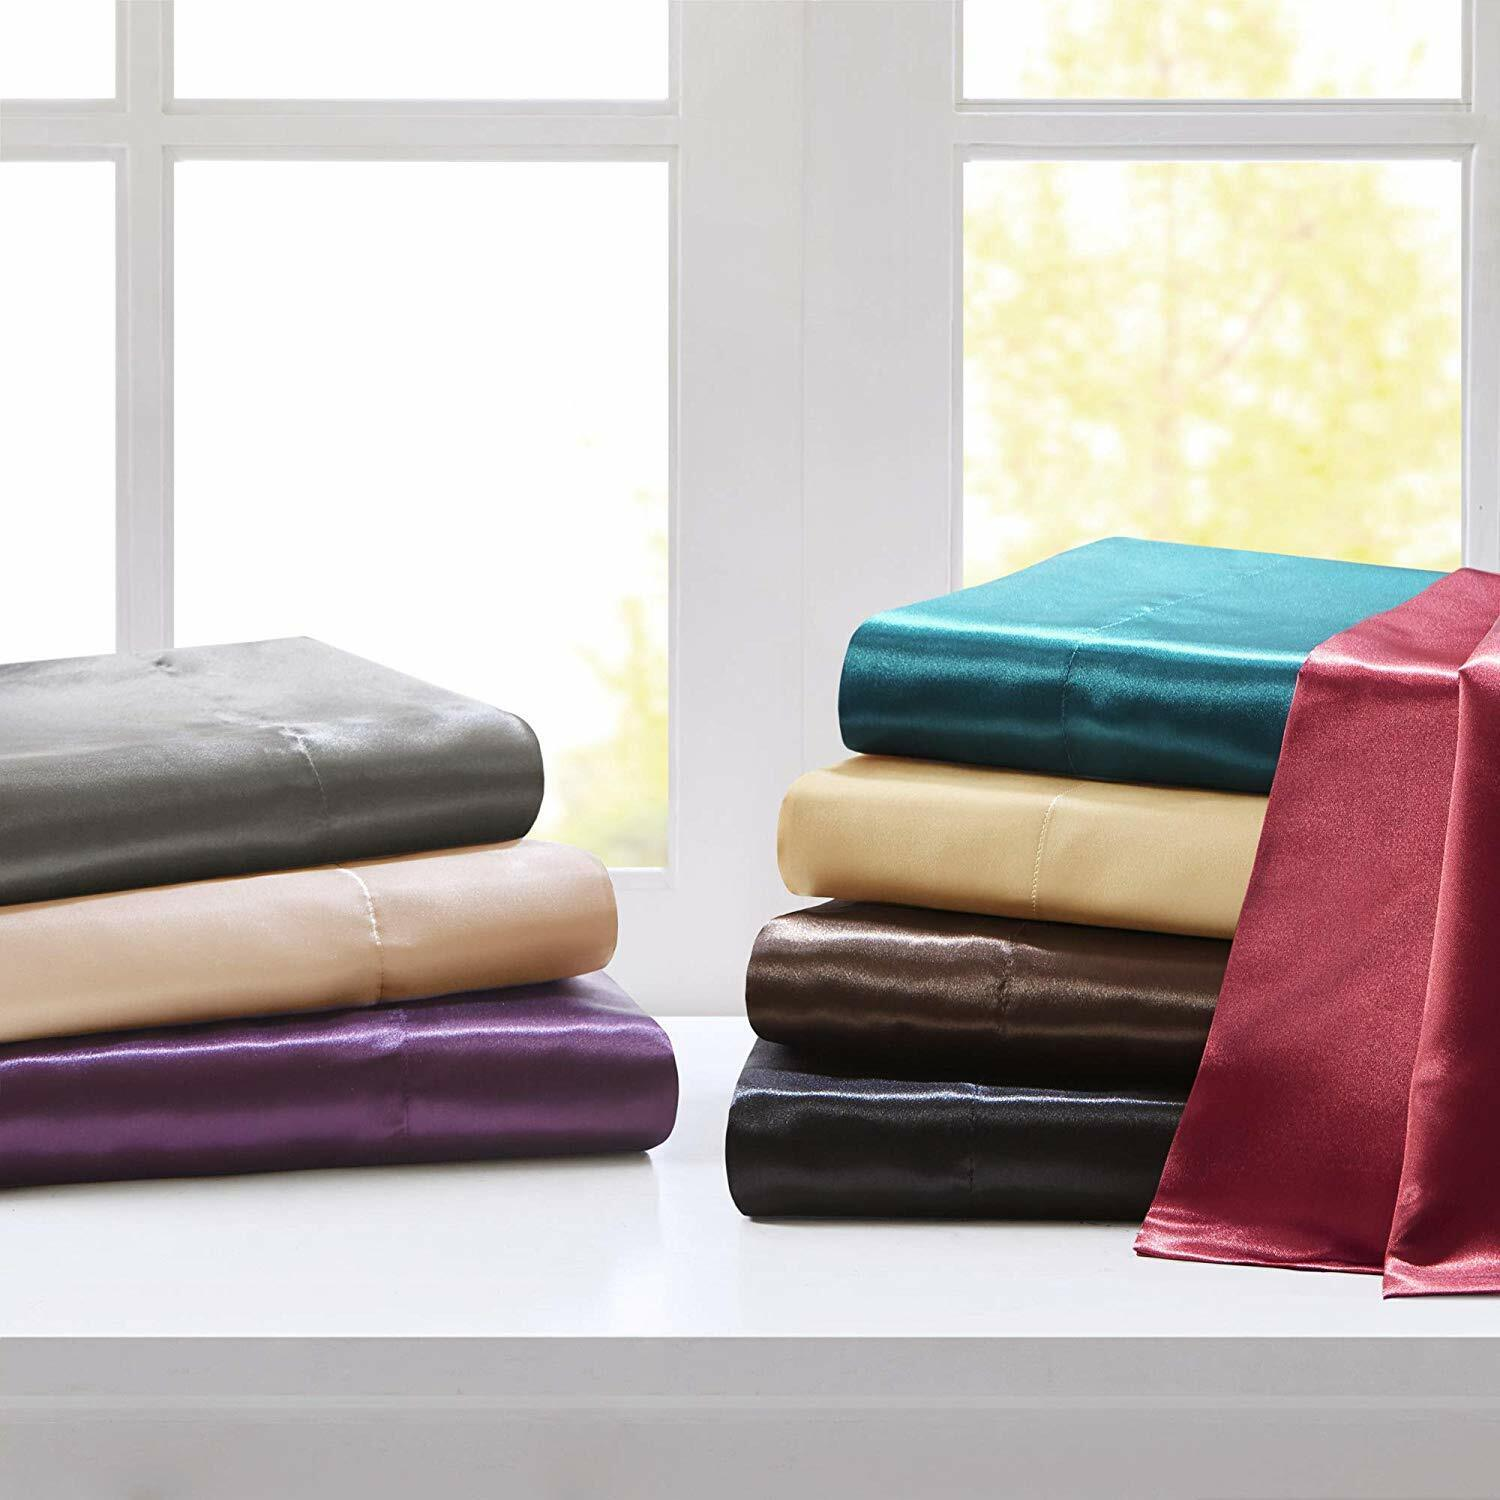 Superior Bedding Items New Satin Silk 1000 TC Full Size Select colors